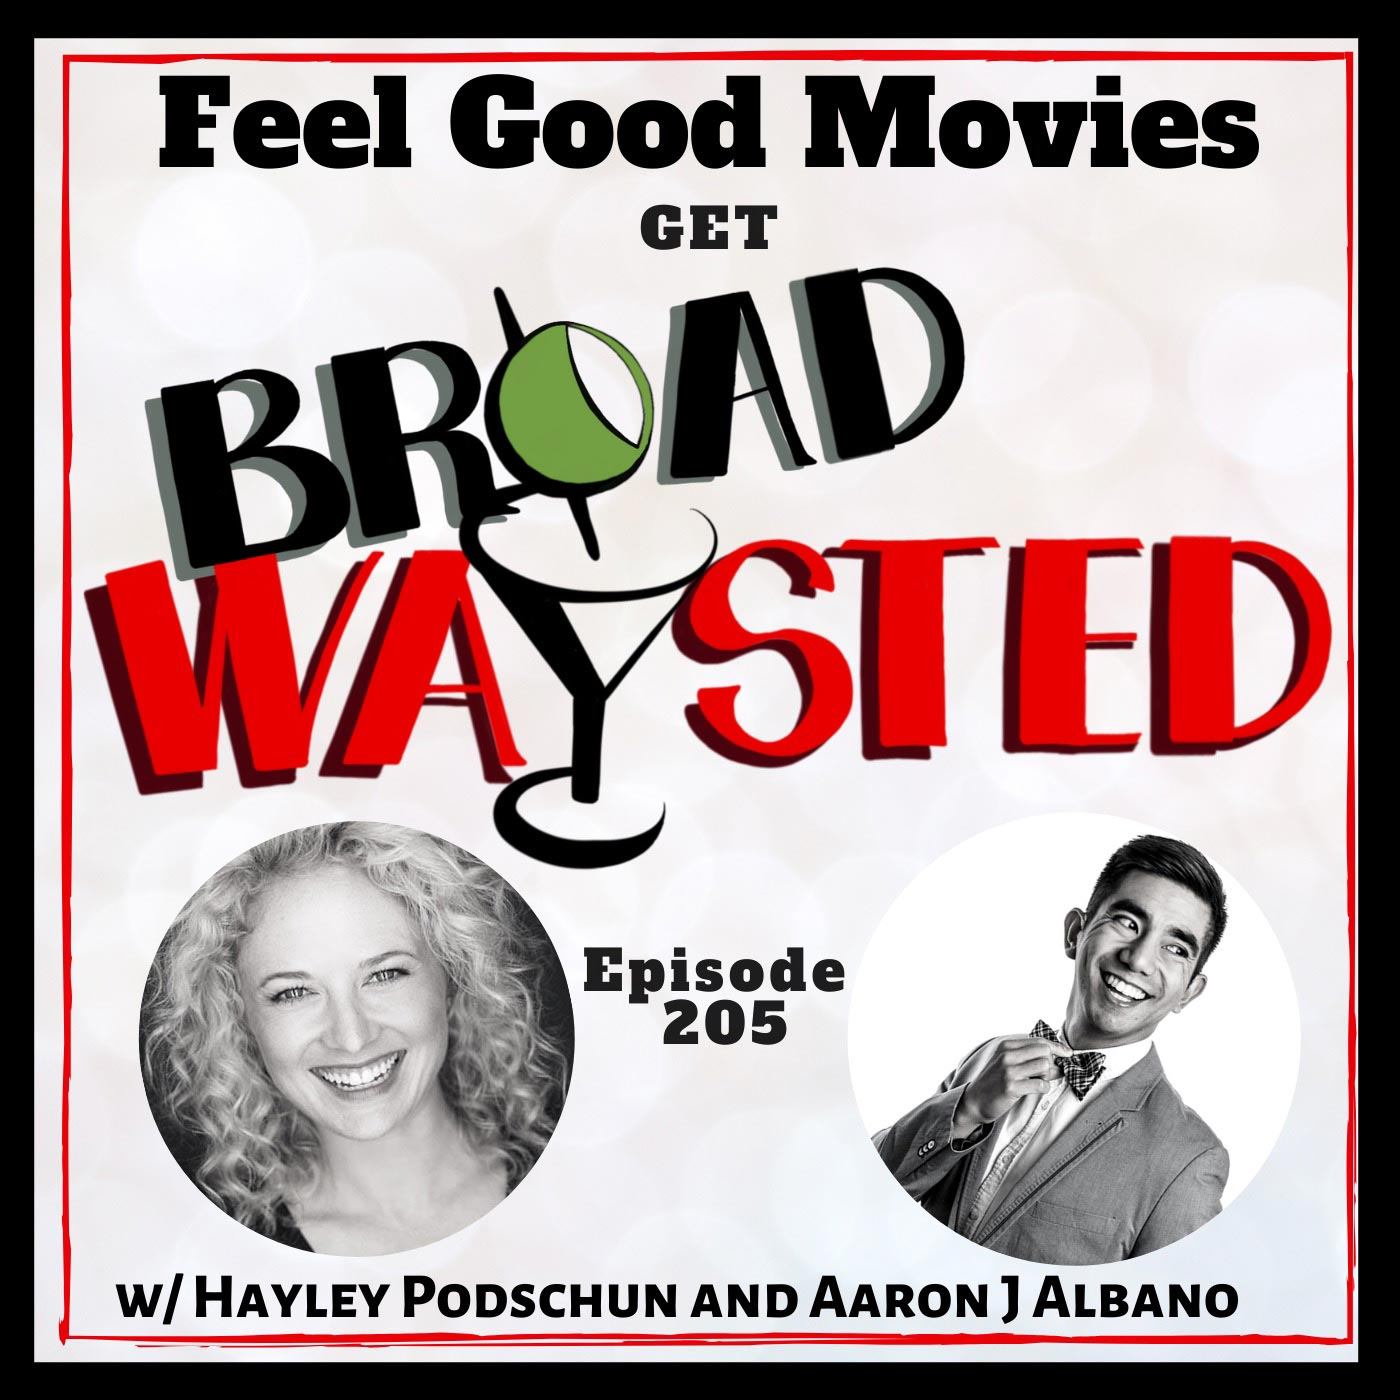 Broadwaysted - Episode 205: Feel Good Movies get Broadwaysted!